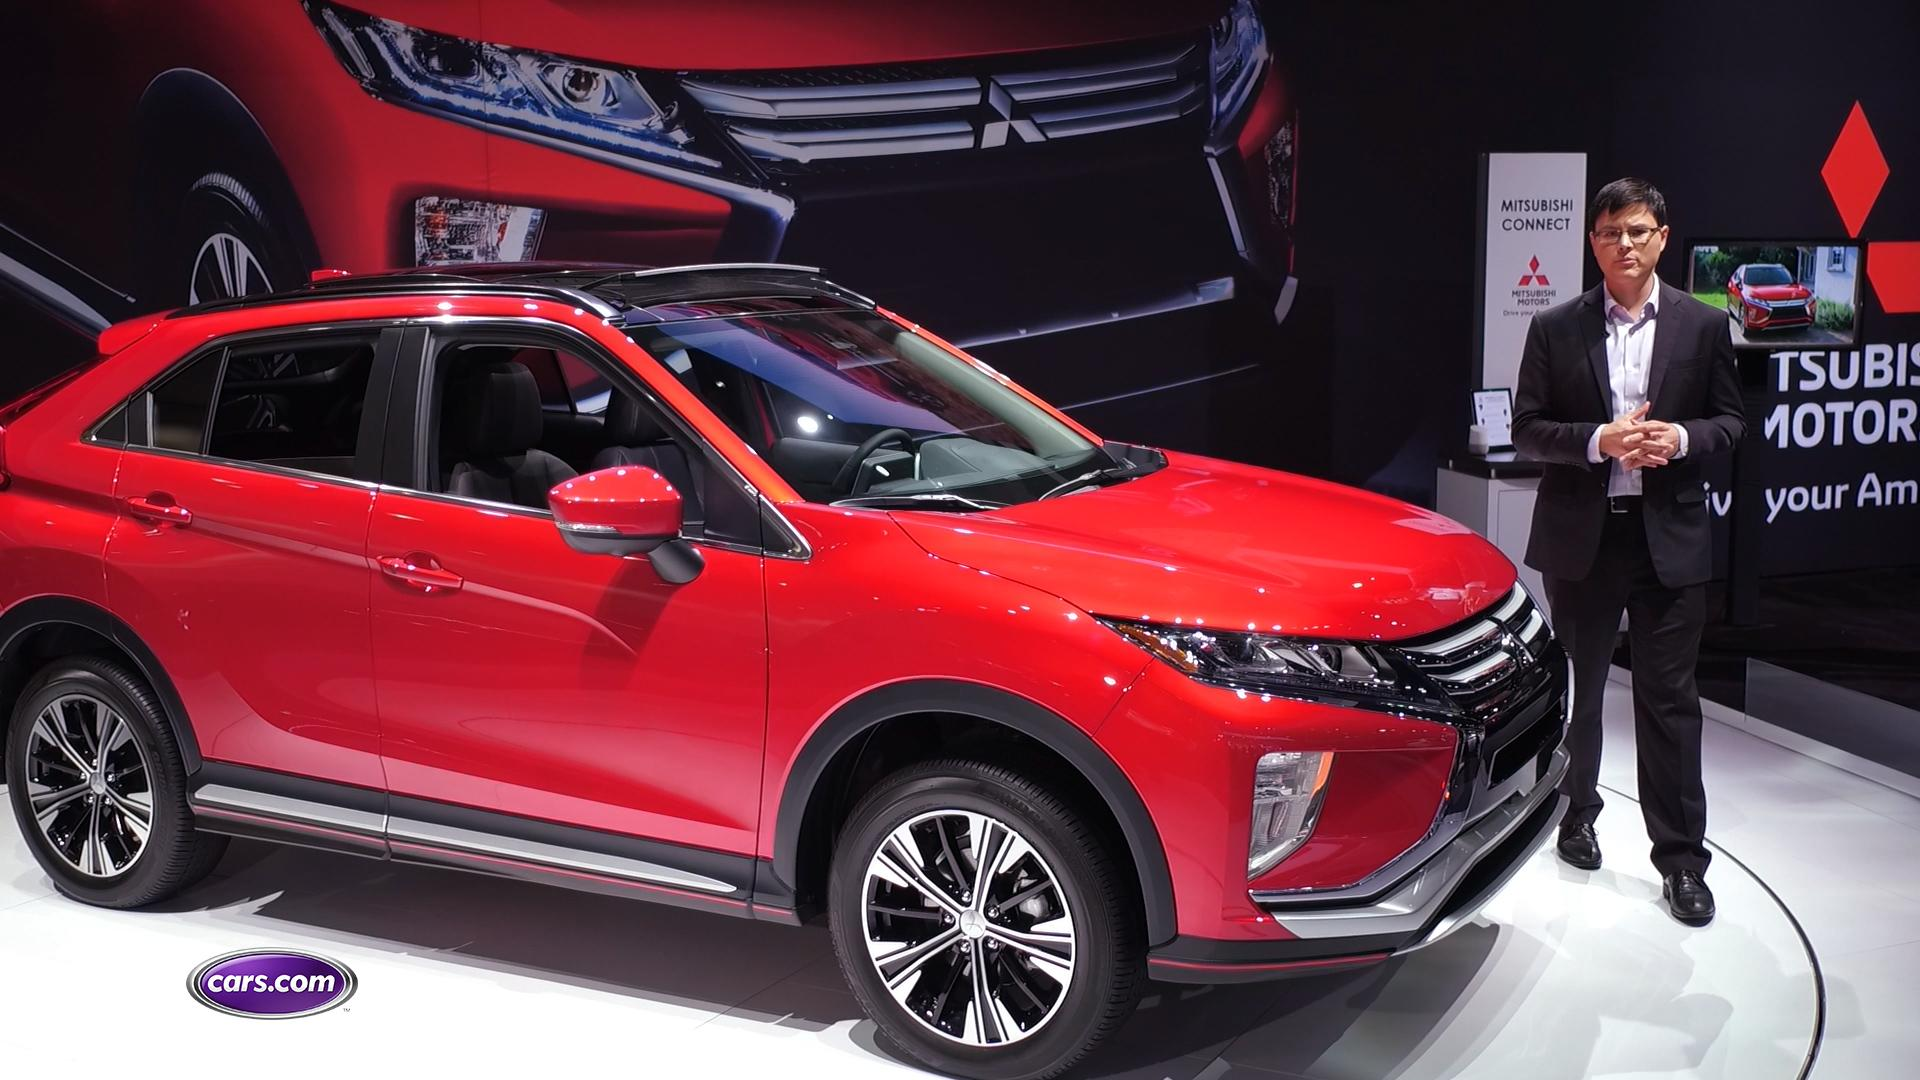 Video: 2018 Mitsubishi Eclipse Cross is a Mixed Bag – Cars.com